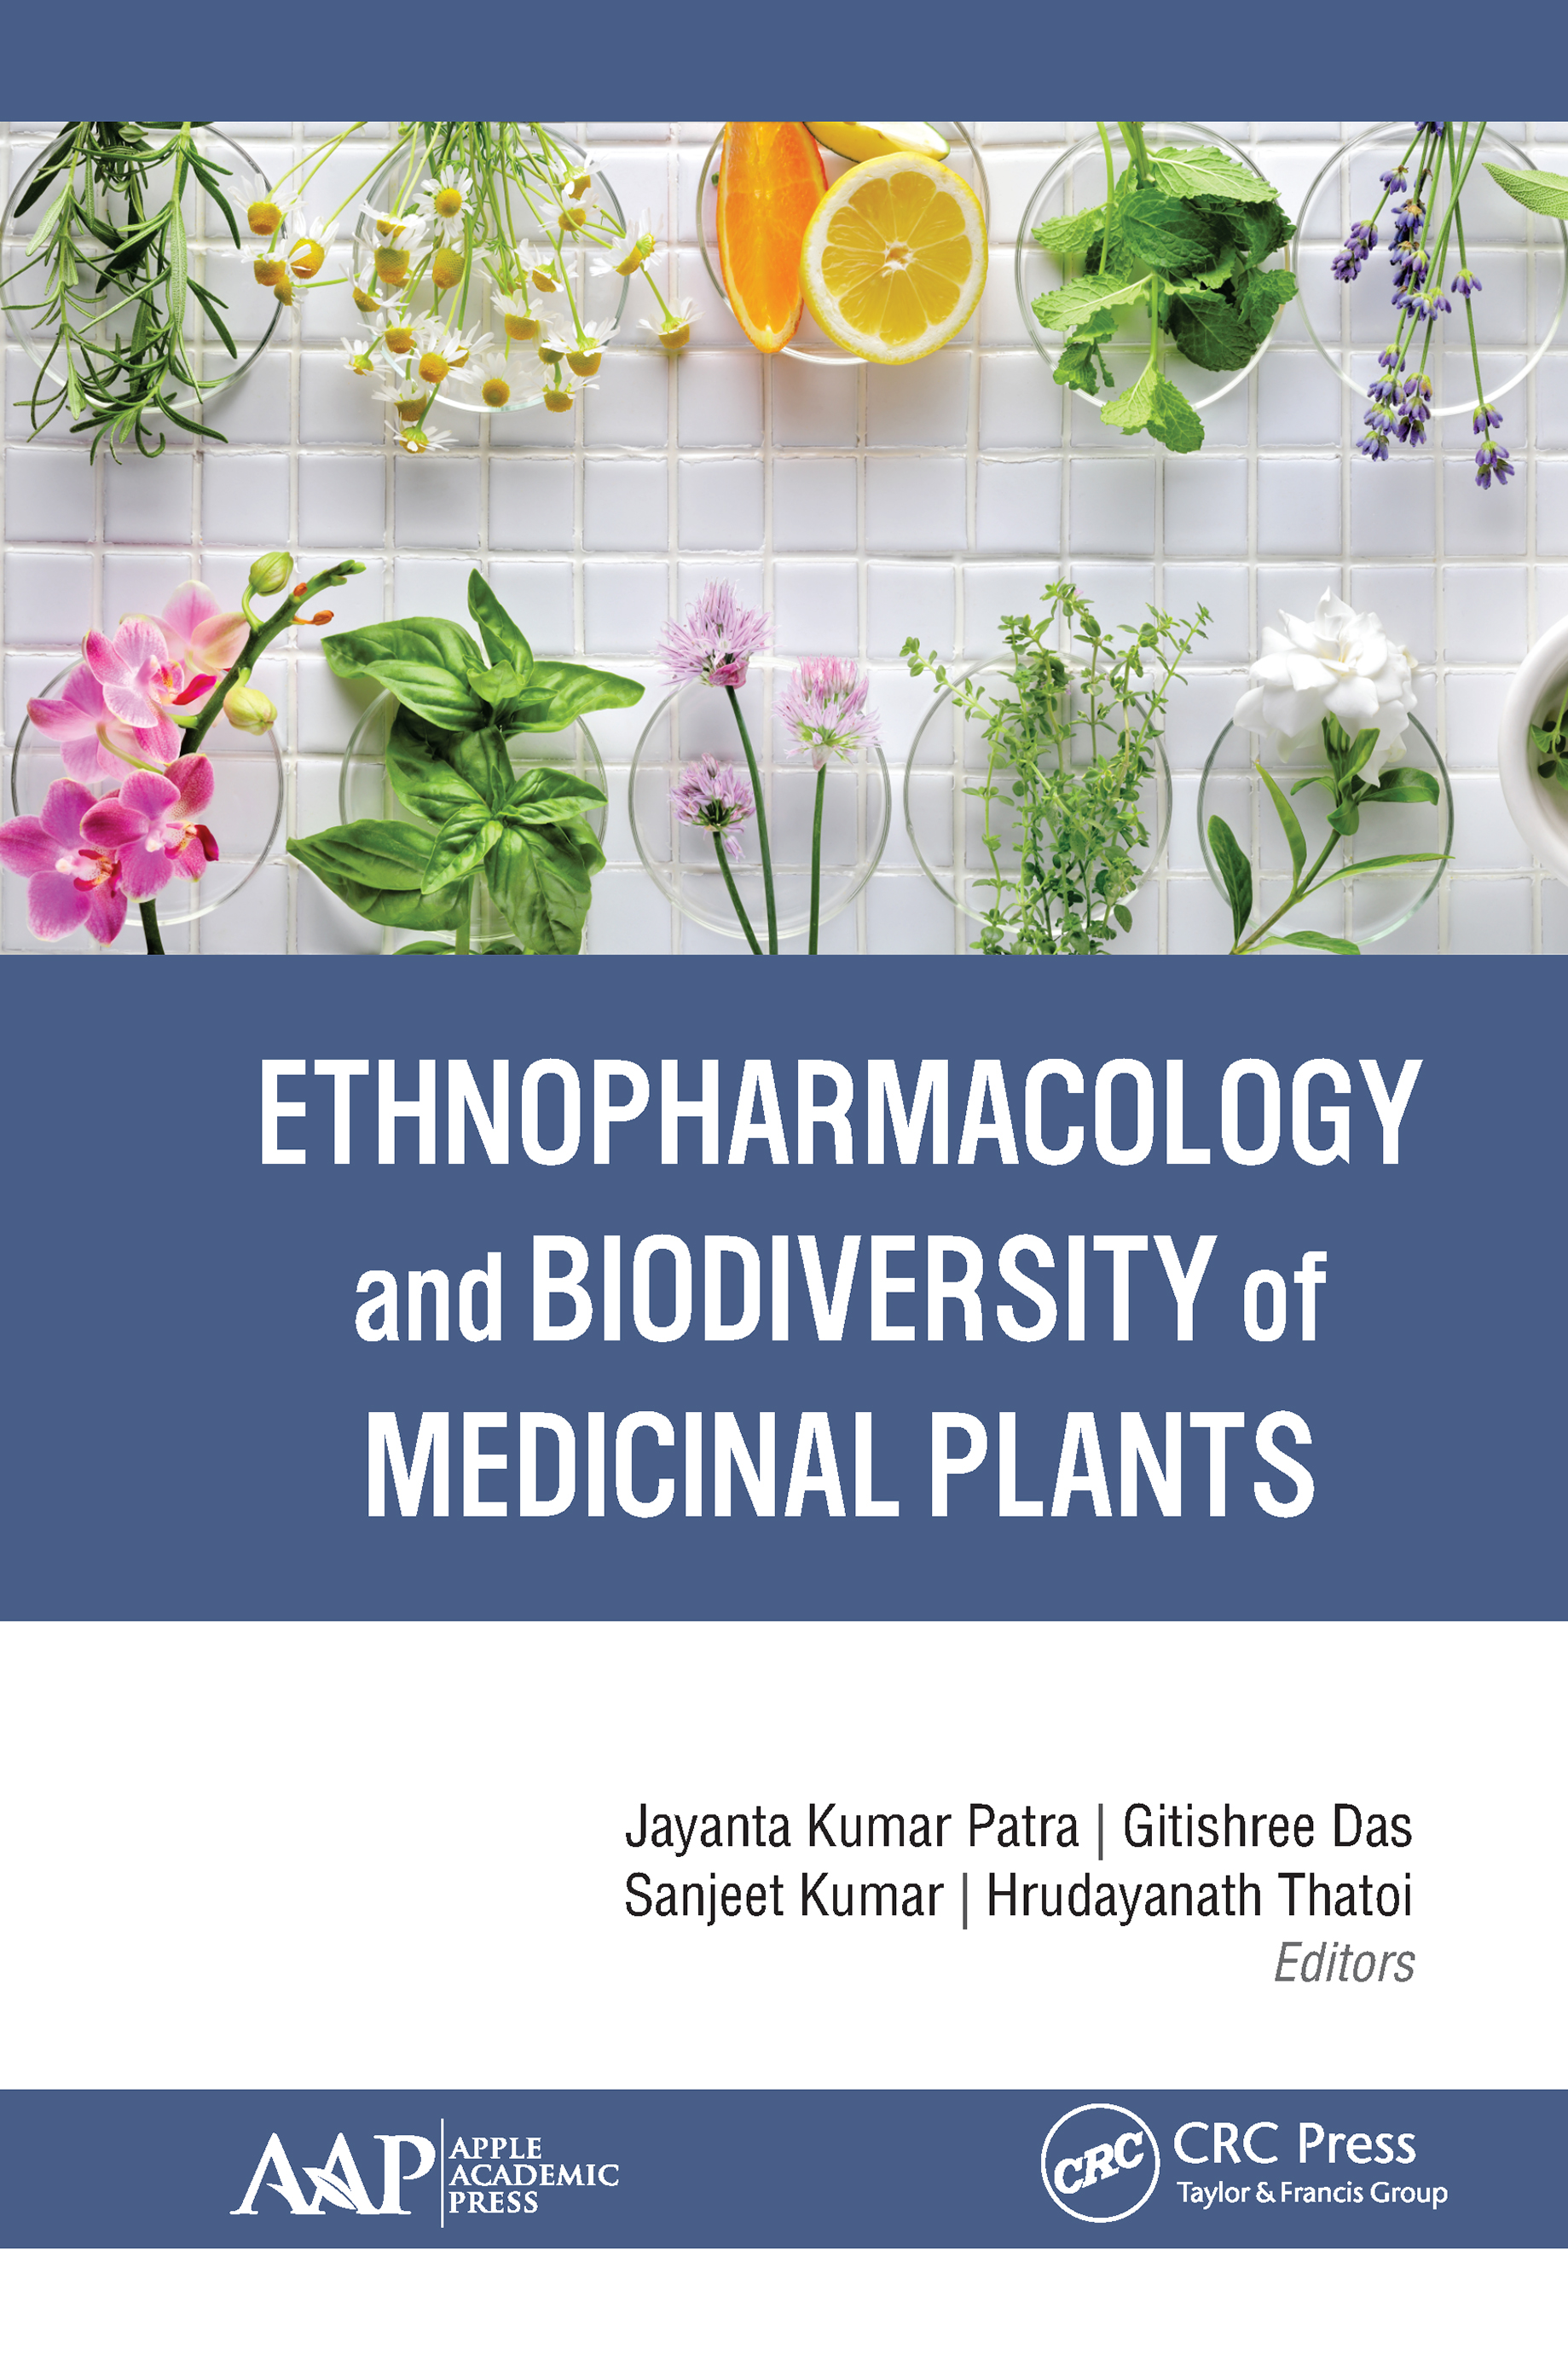 Ethnopharmacology and Biodiversity of Medicinal Plants book cover